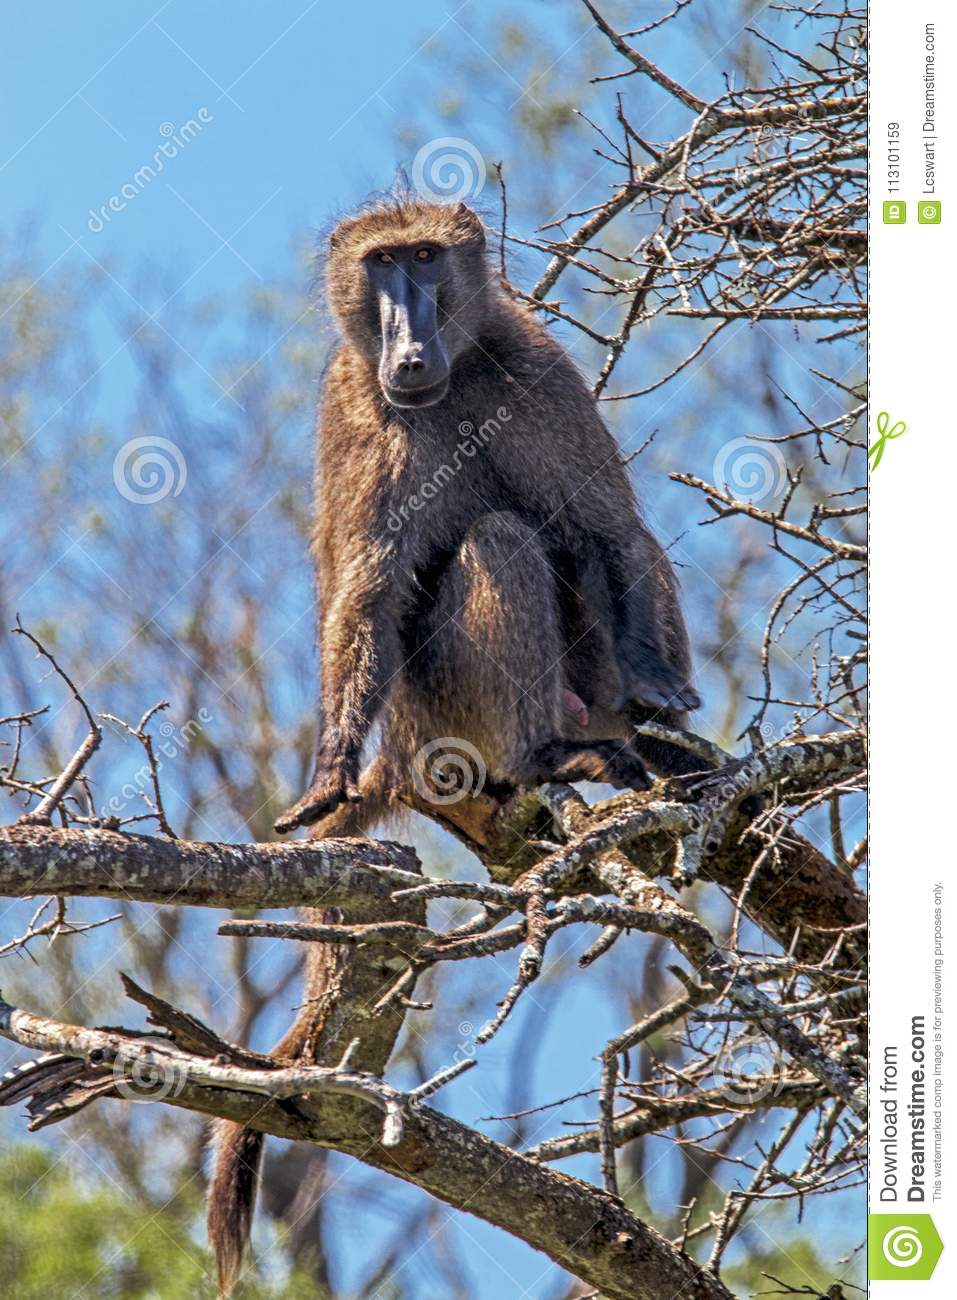 Single Baboon Sitting on Dry Leafless Tree Branches